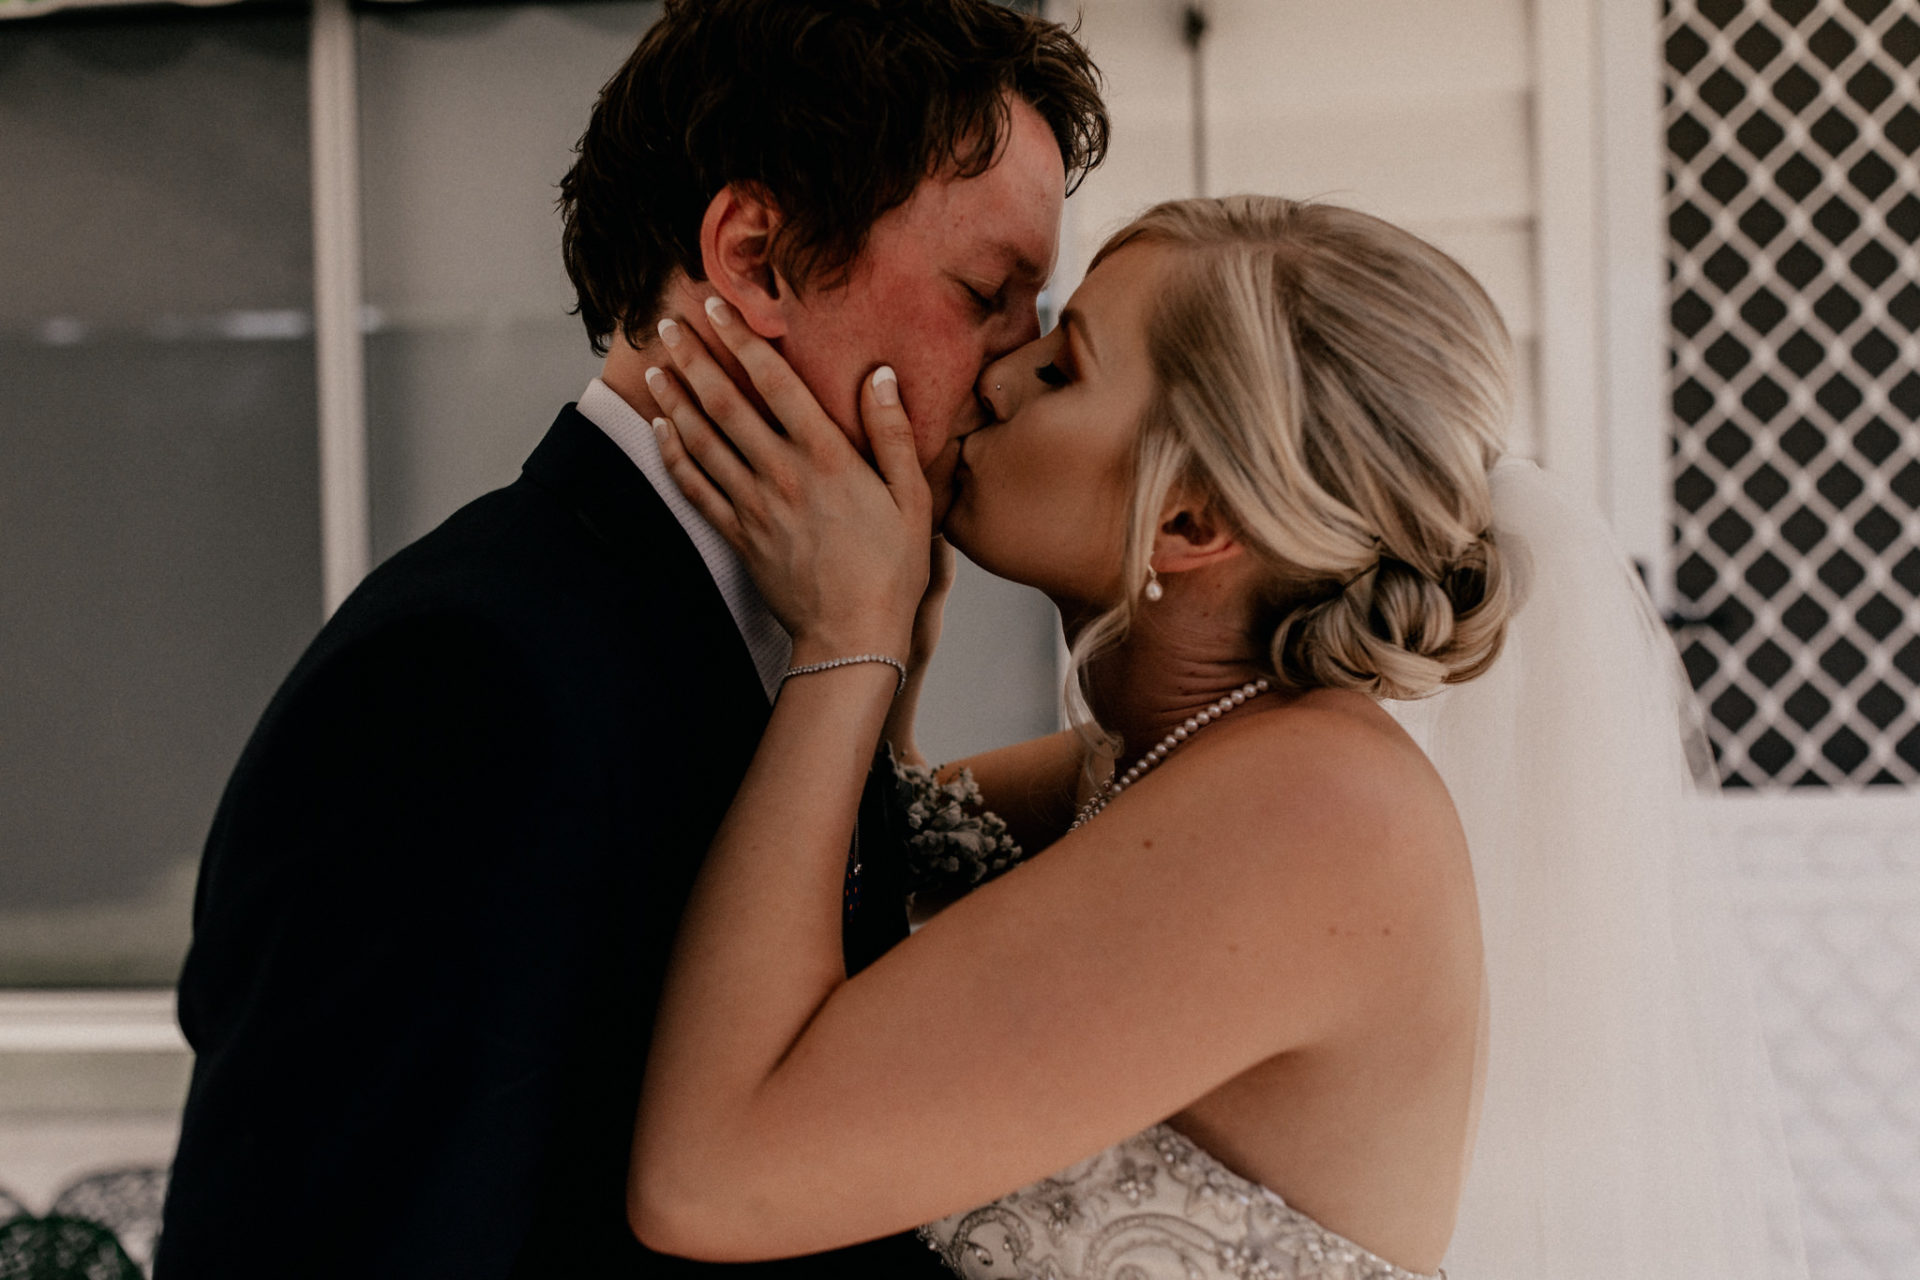 backyard-wedding-australia-melbourne-bride-groom-first-look-dancing-intimate-hug-veil-blue-suit